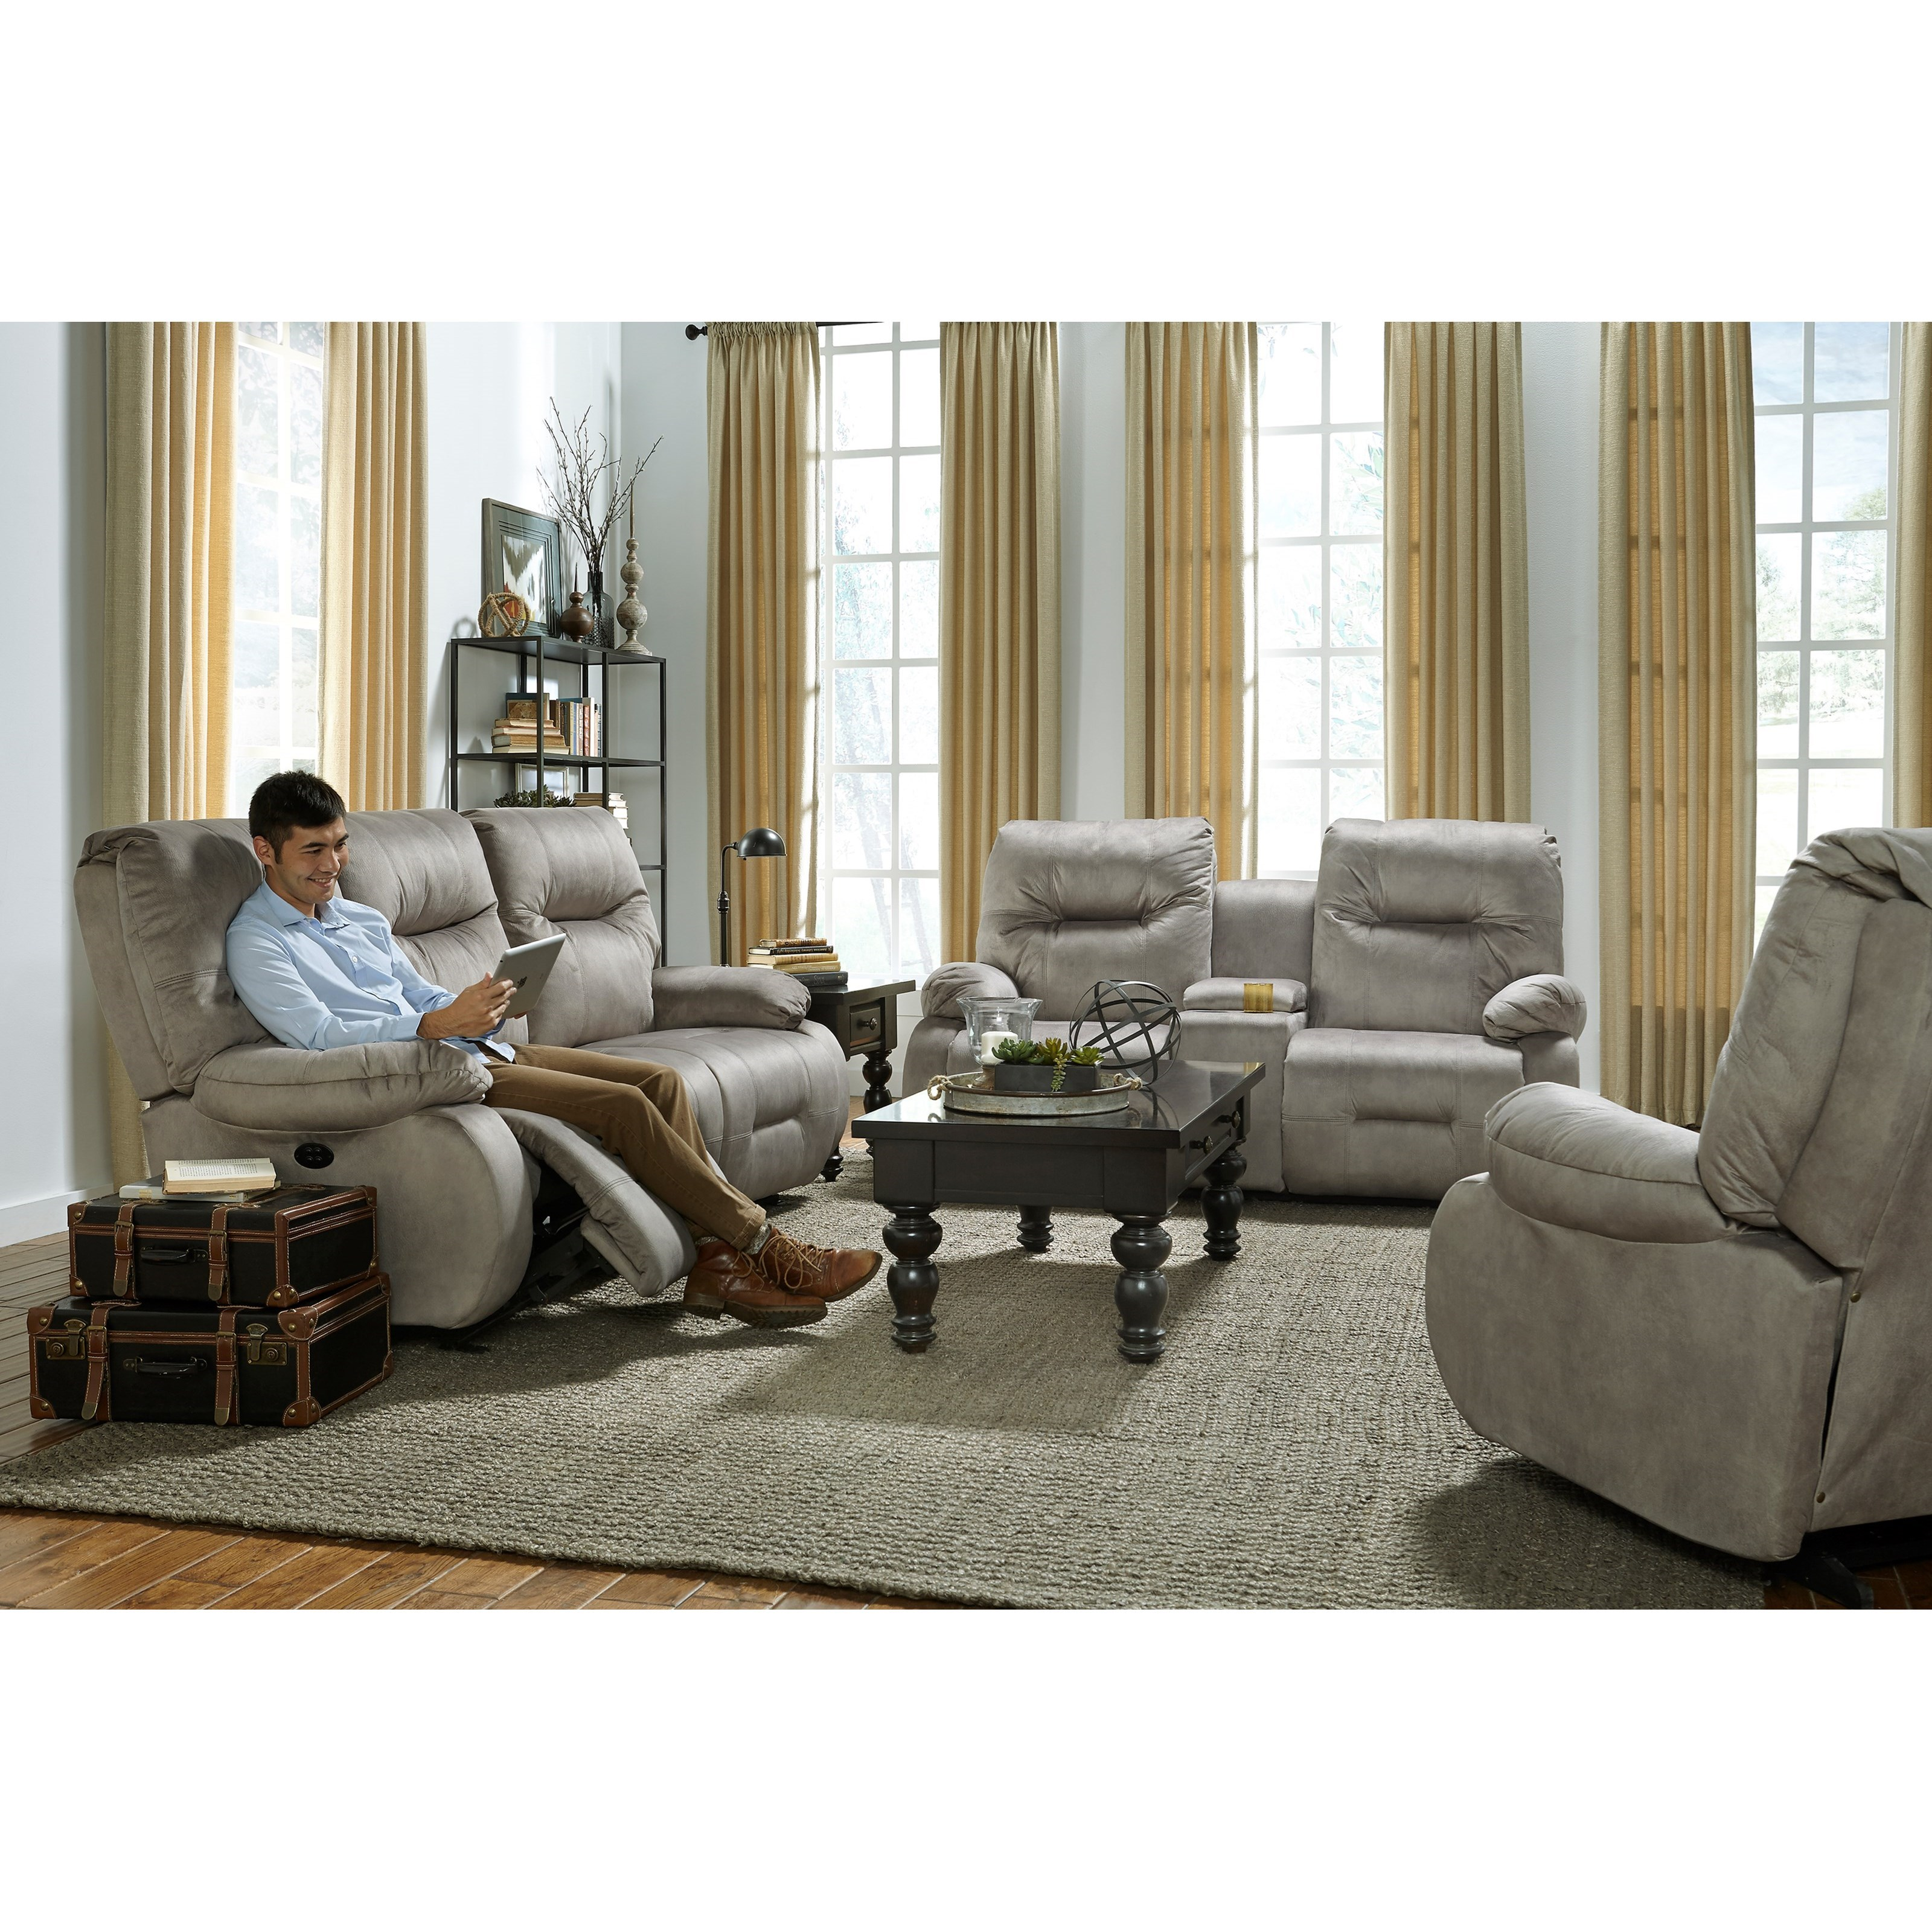 Best Home Furnishings Brinley 2 Space Saver Console Loveseat Knight Furniture Mattress